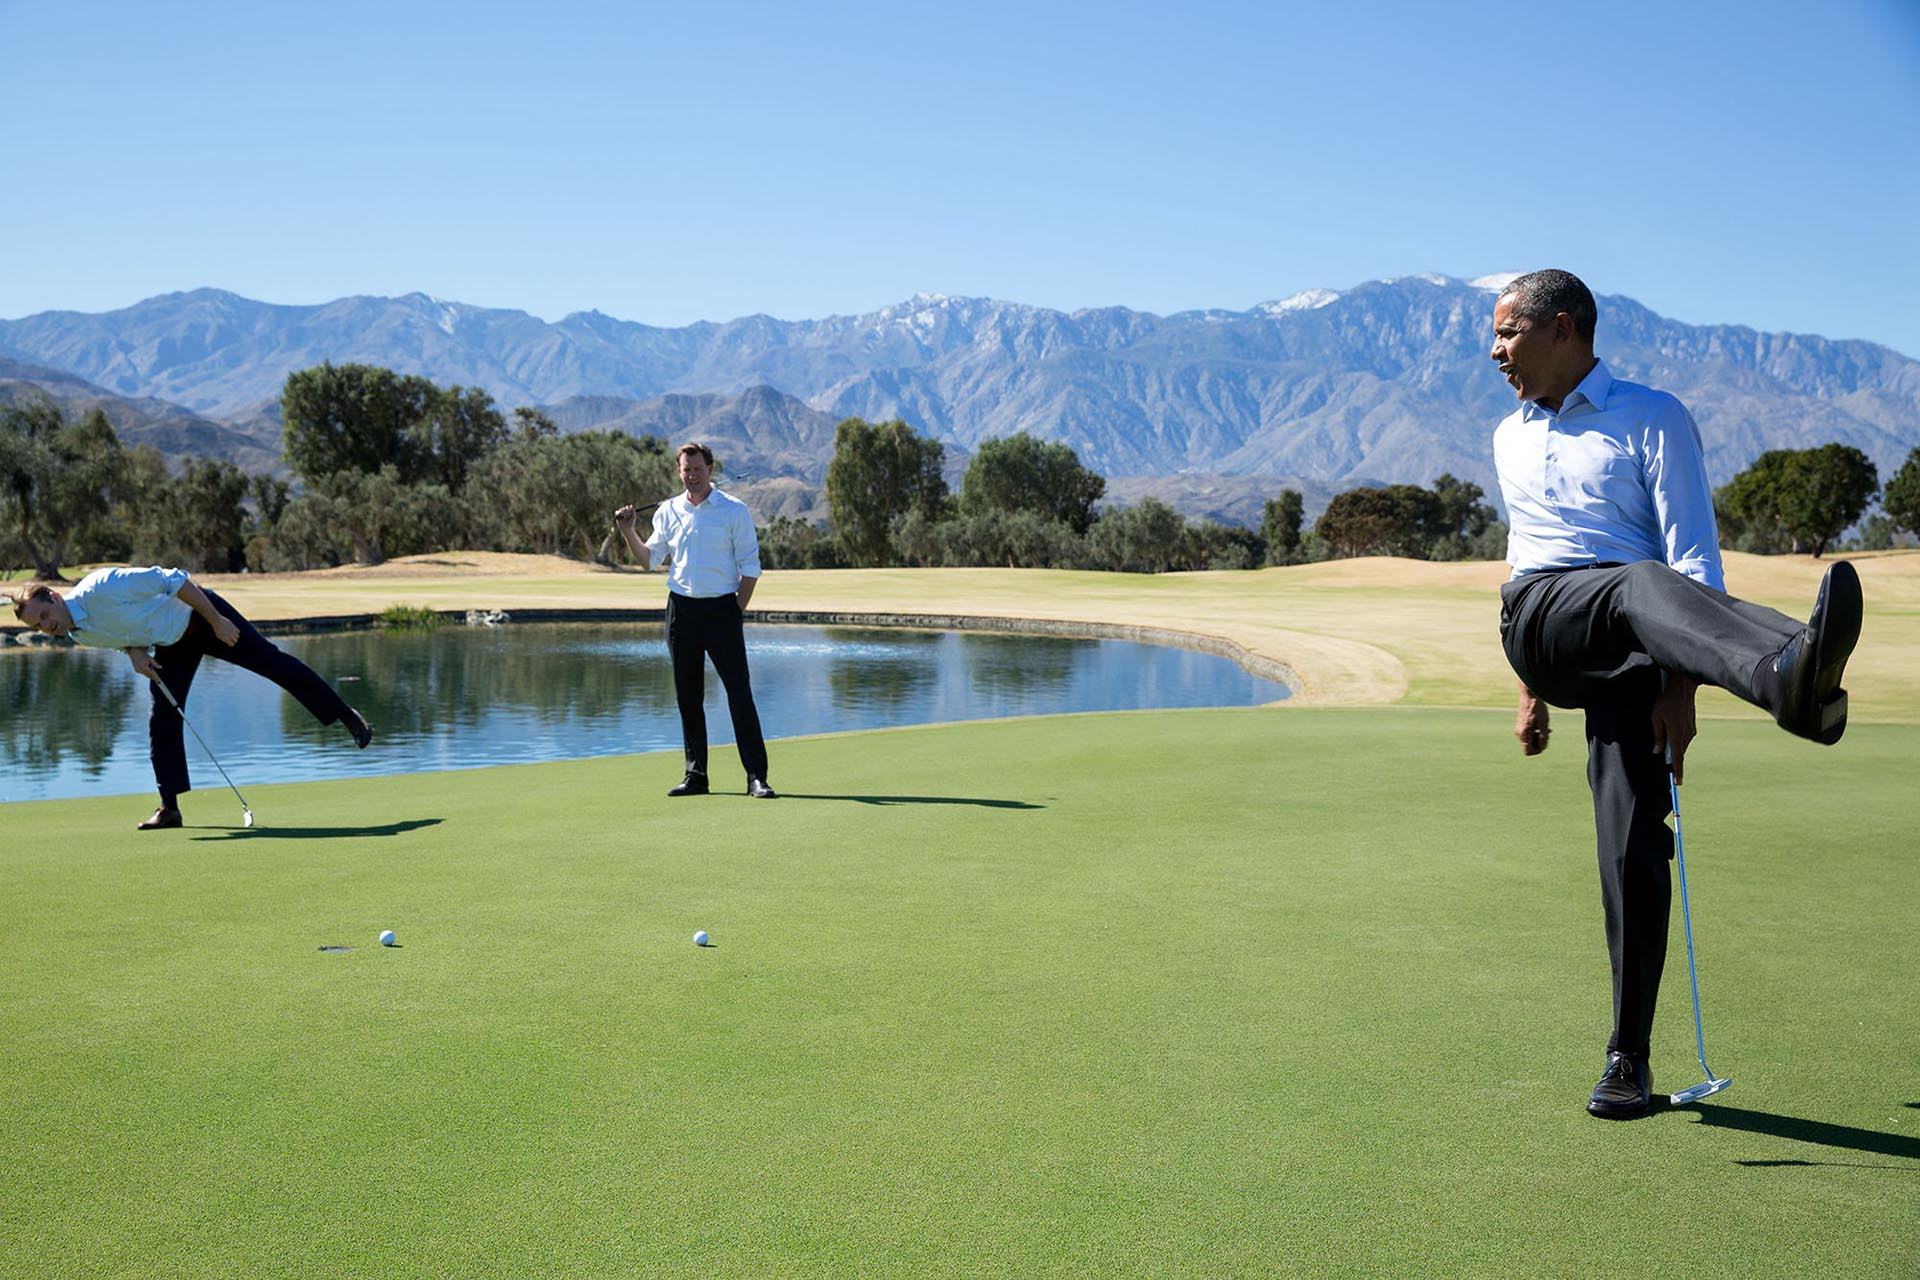 Un juego de golf en Annenberg Retreat, Sunnylands, Rancho Mirage, Califonia